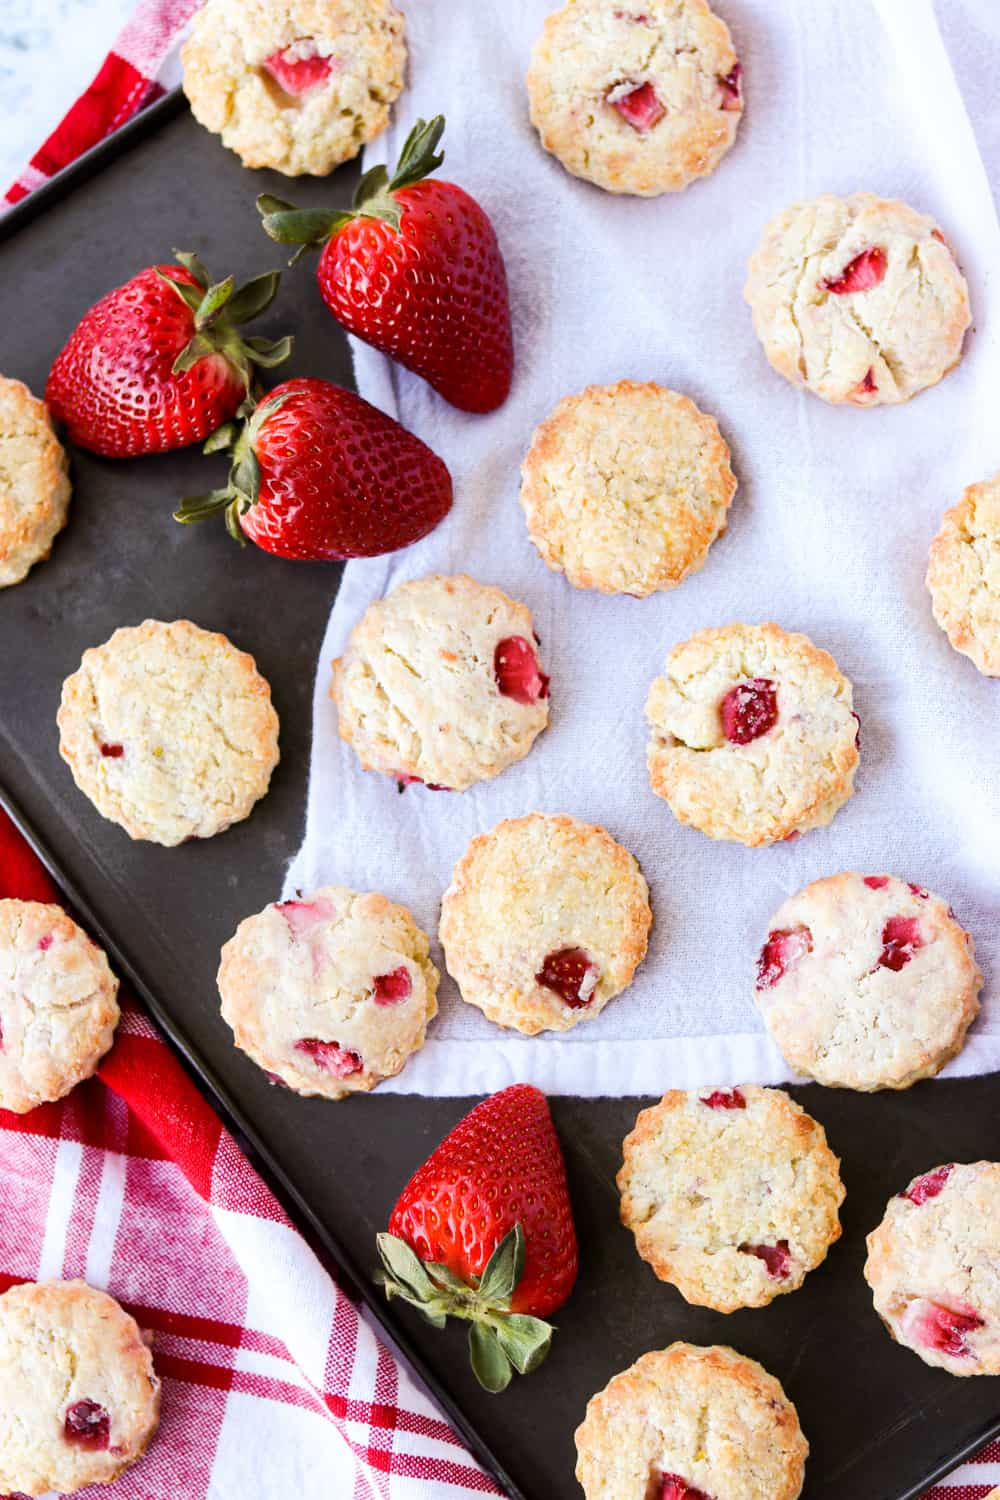 A tray of Strawberry Scones.